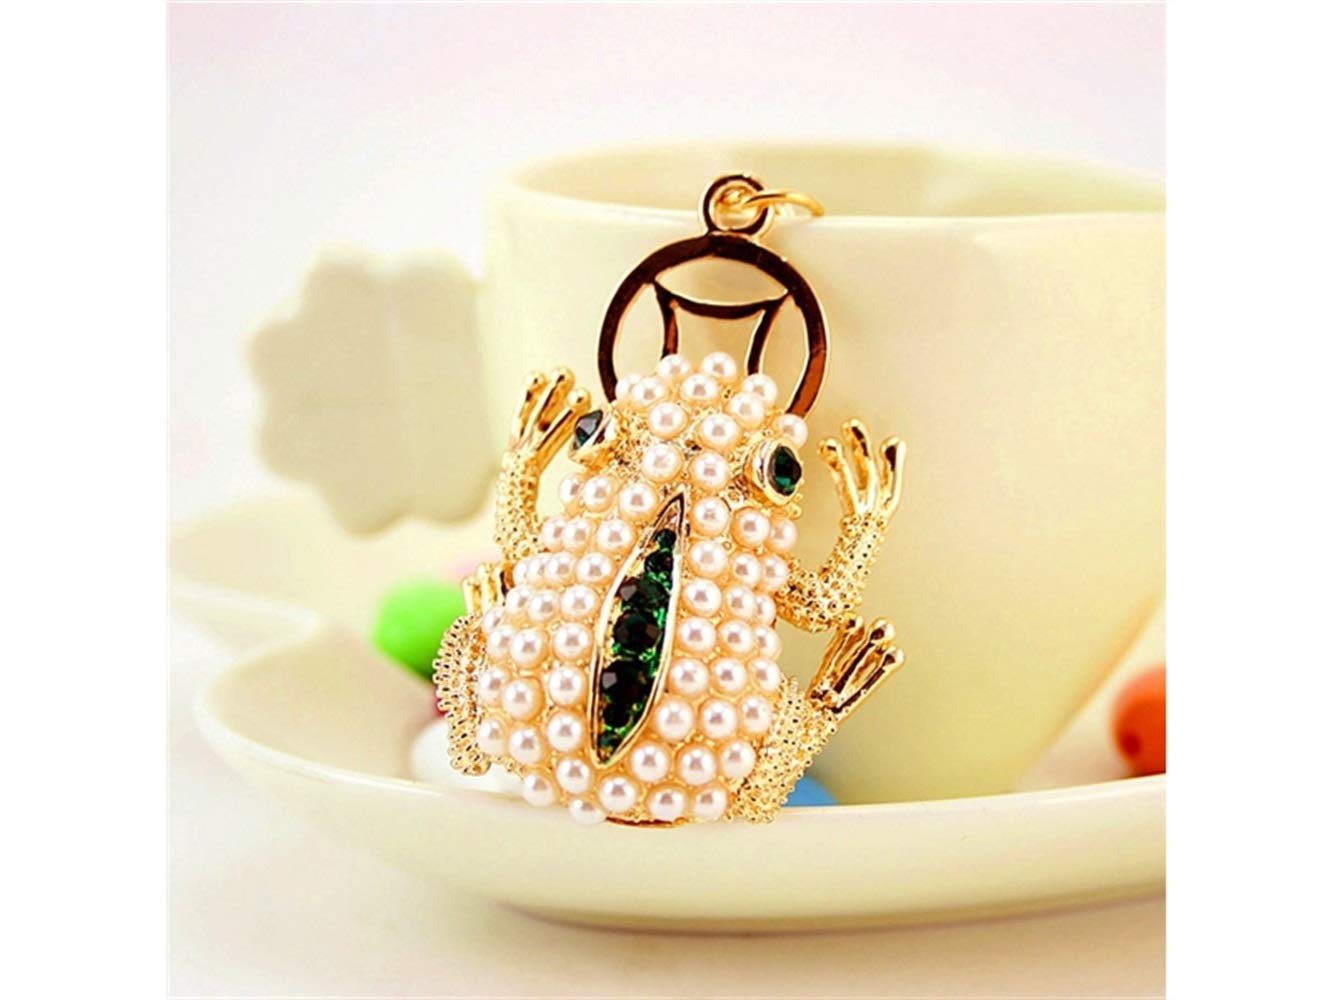 Car Keychain, Exquisite Lucky Toad Frog Keychain Animal Shape Key Trinket Car Bag Key Holder Decorations(Gold) for Gift